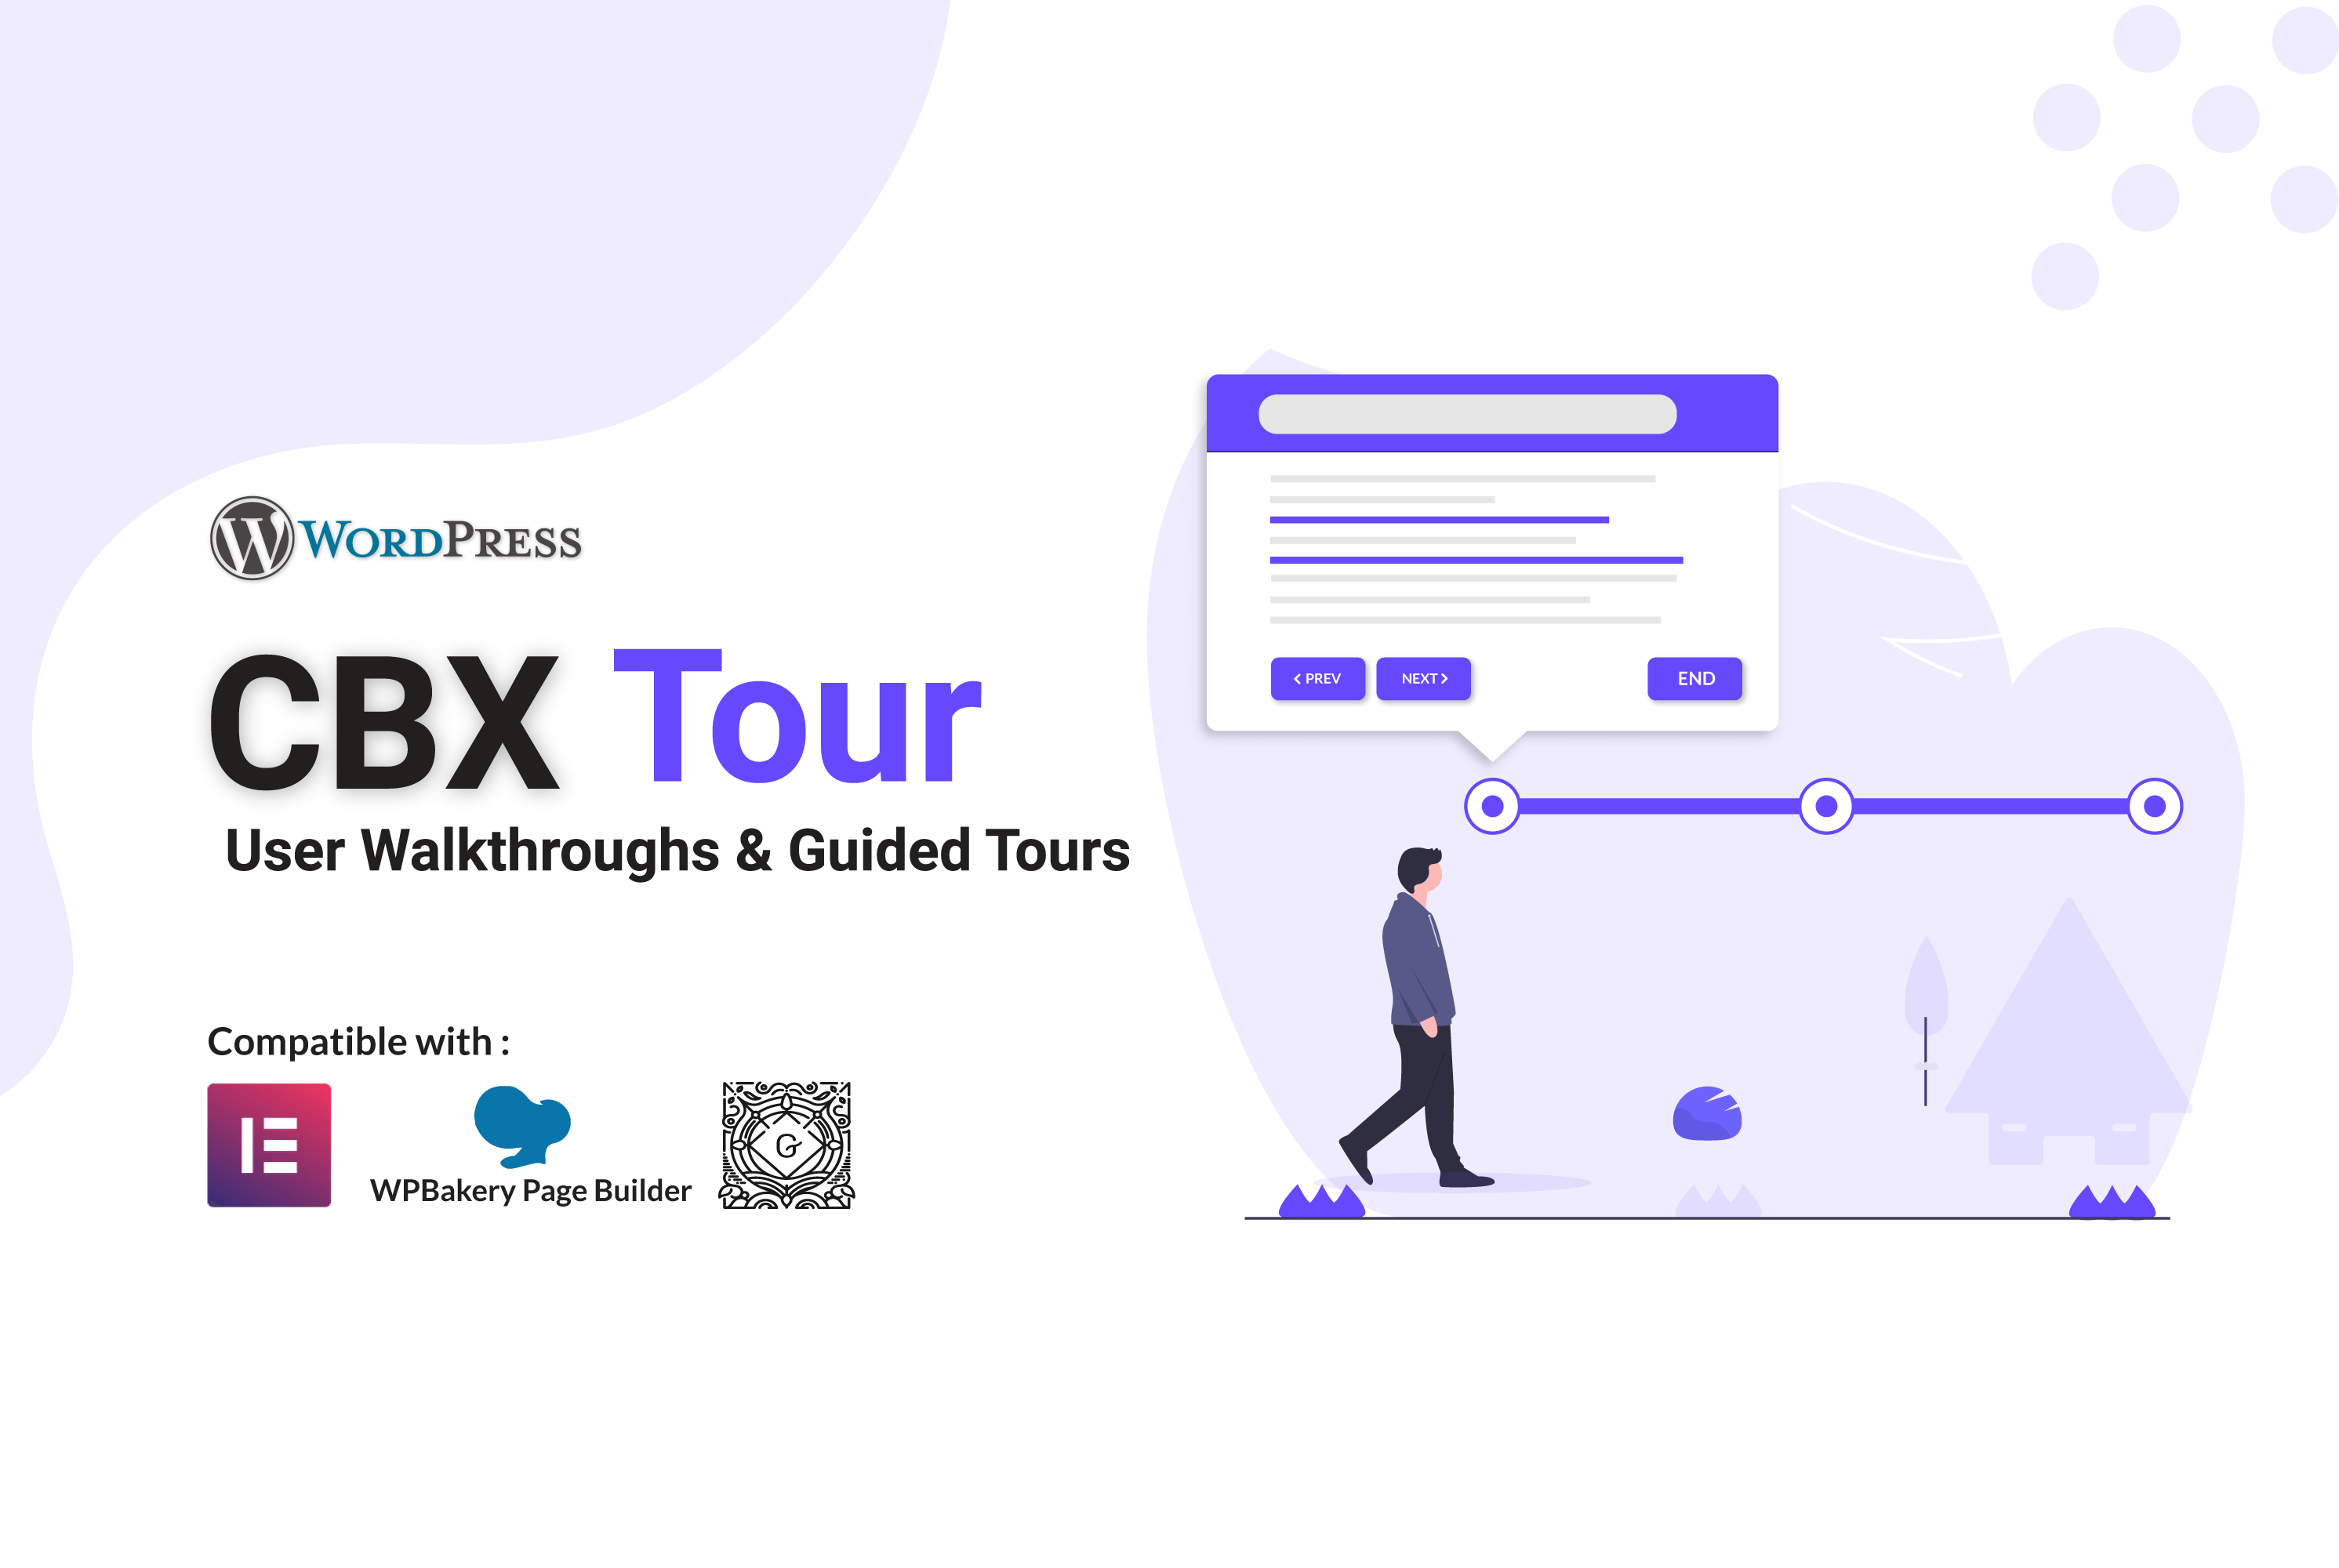 CBX Tour – User Walkthroughs & Guided Tours for WordPress